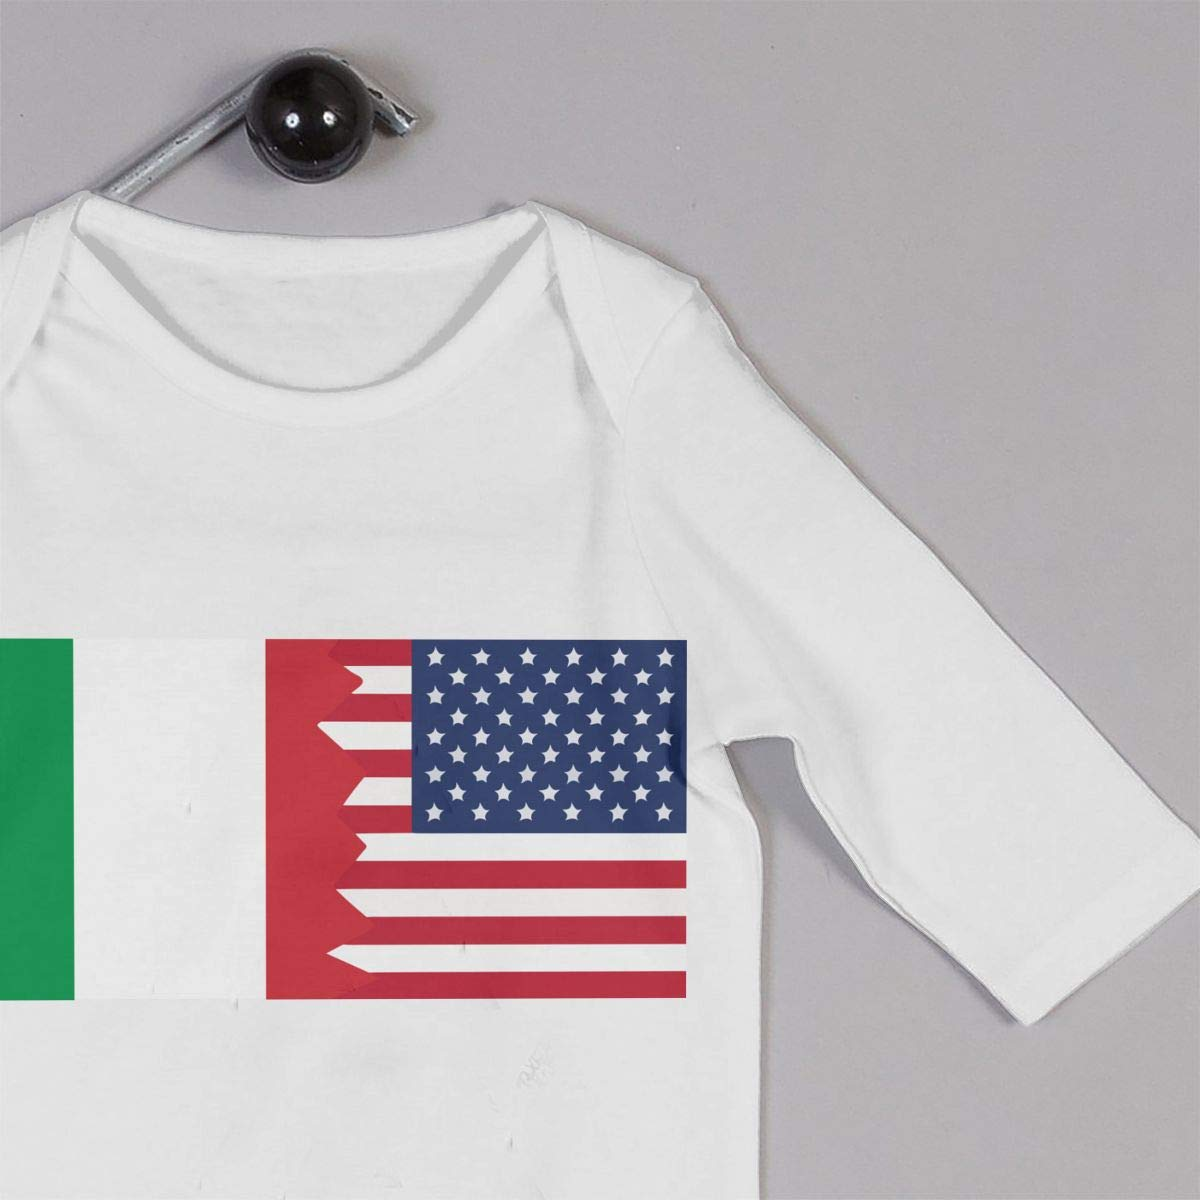 A1BY-5US Baby Infant Toddler Cotton Long Sleeve Italian USA Flag Climb Romper Funny Printed Romper Clothes